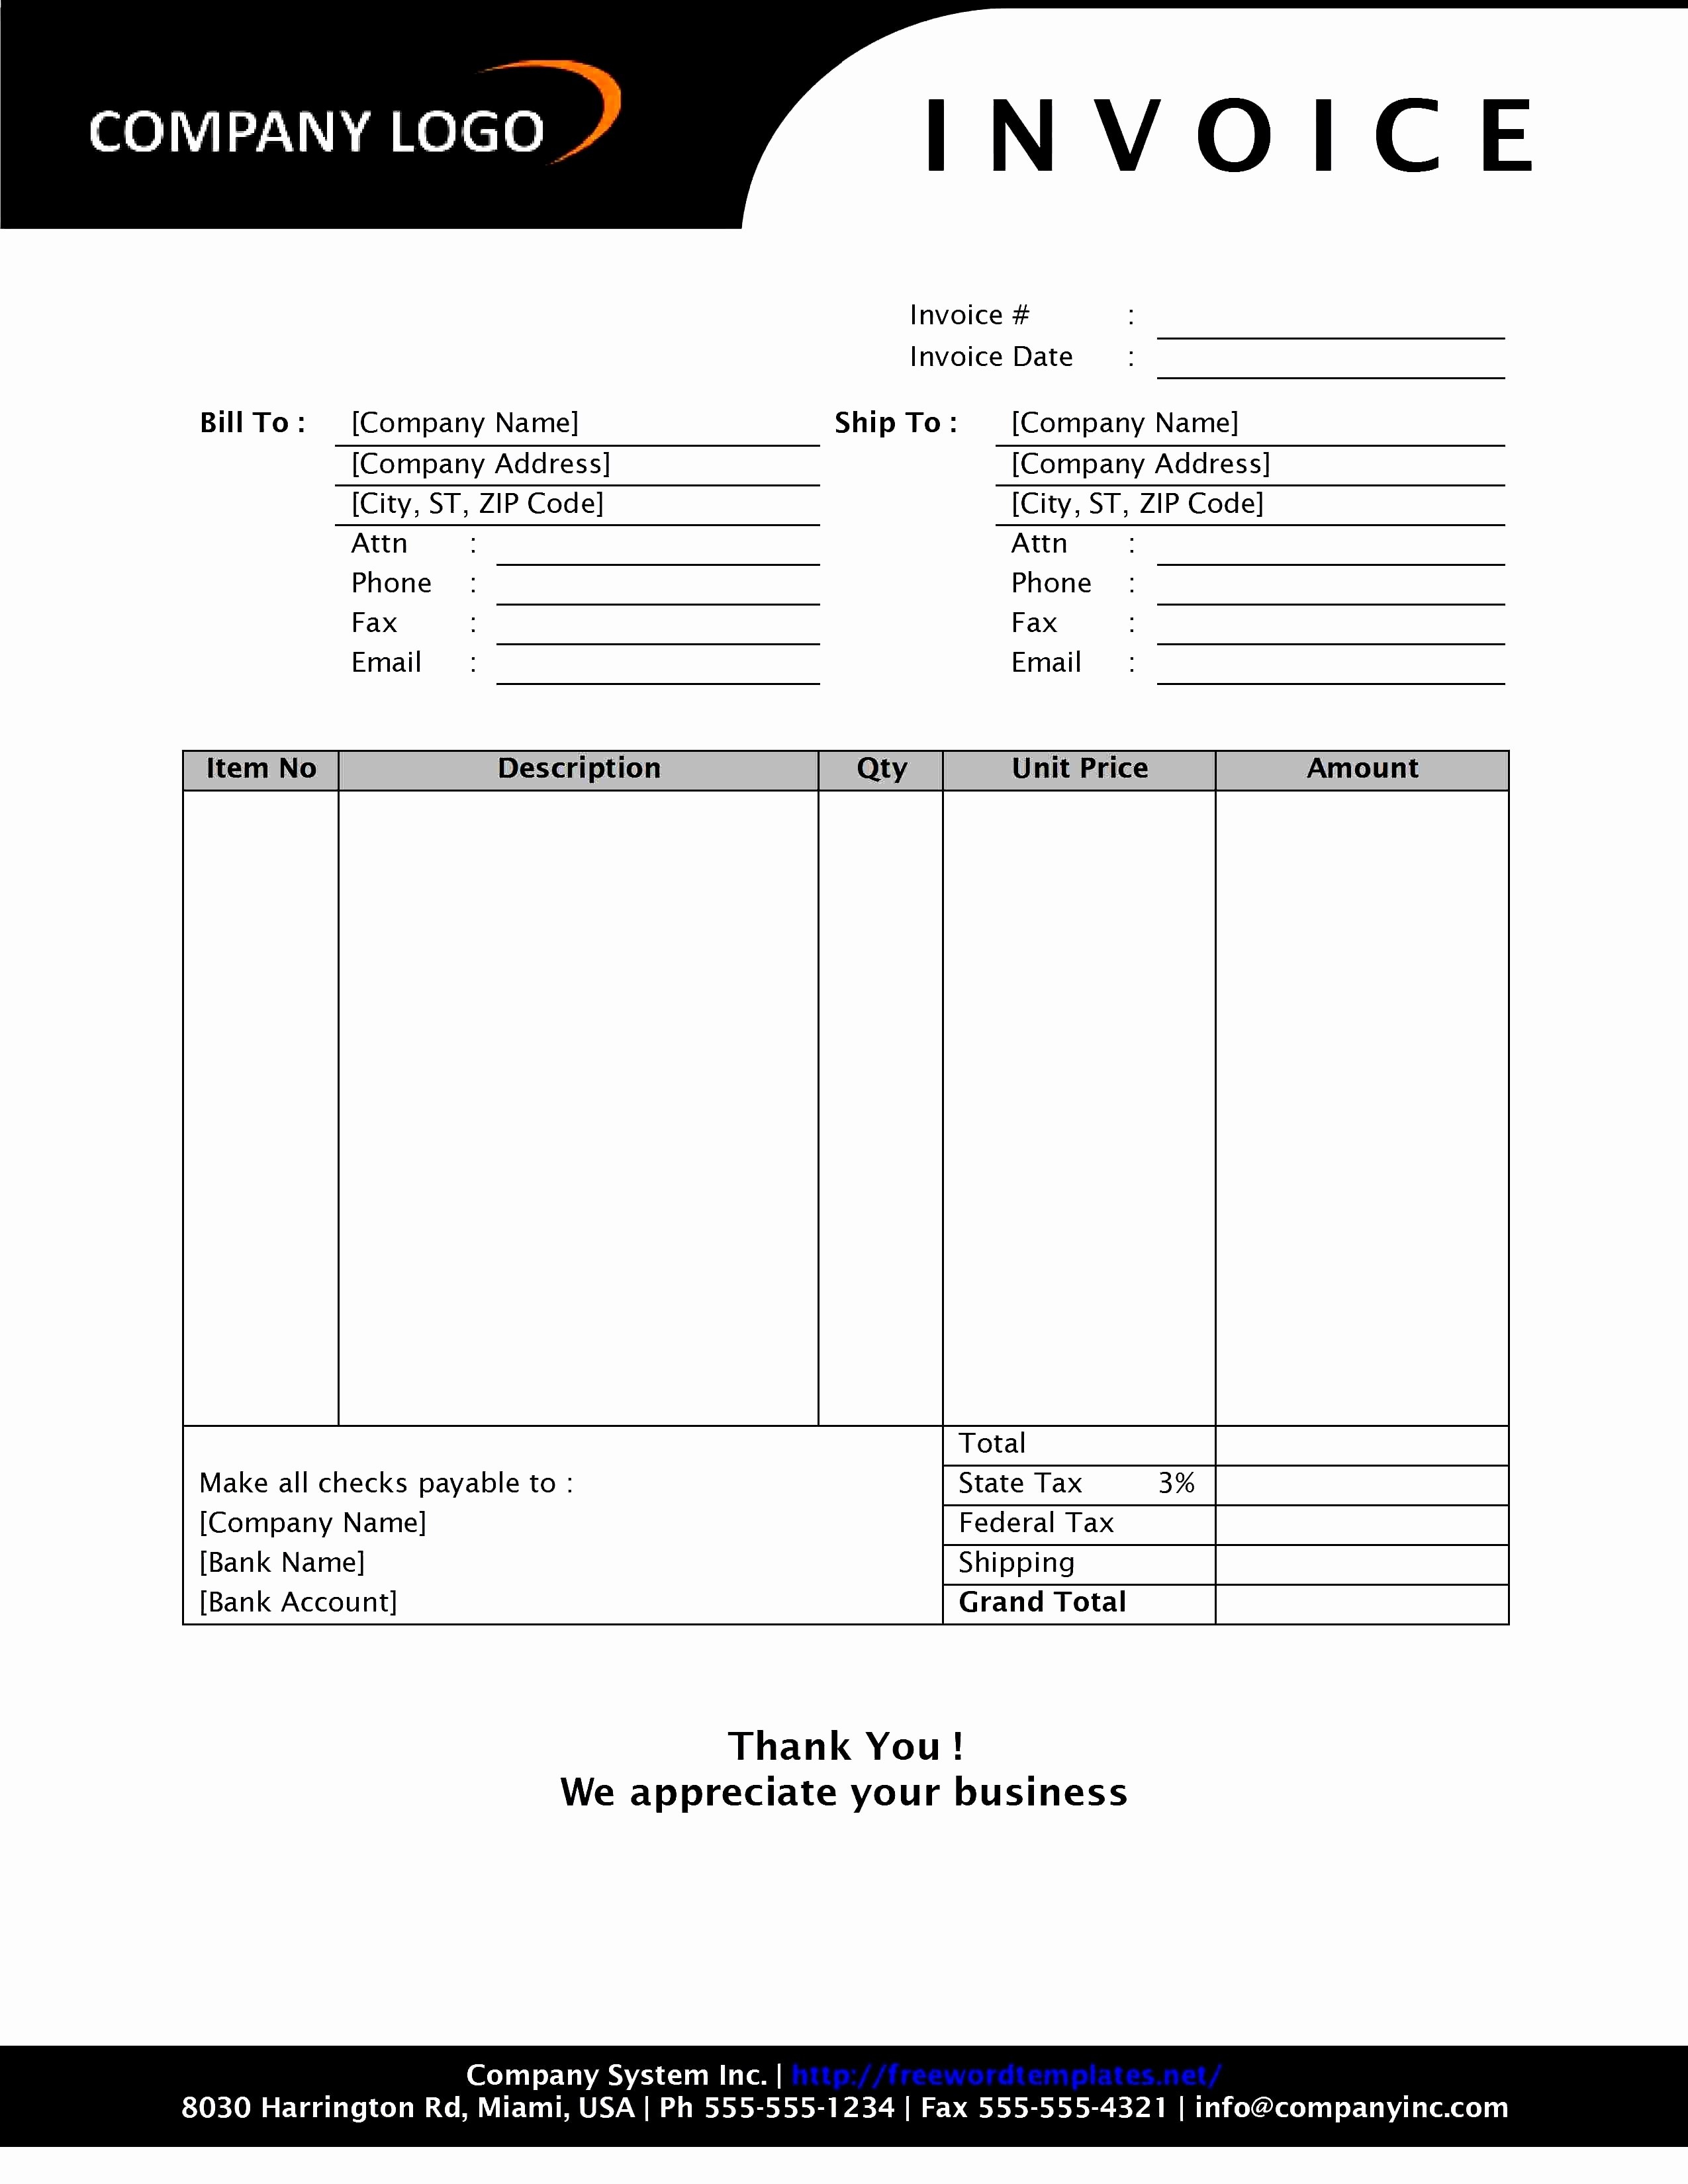 Invoice Template Filetype Doc With Plus Together Letsgonepal Pertaining To Invoice Template Filetype Doc